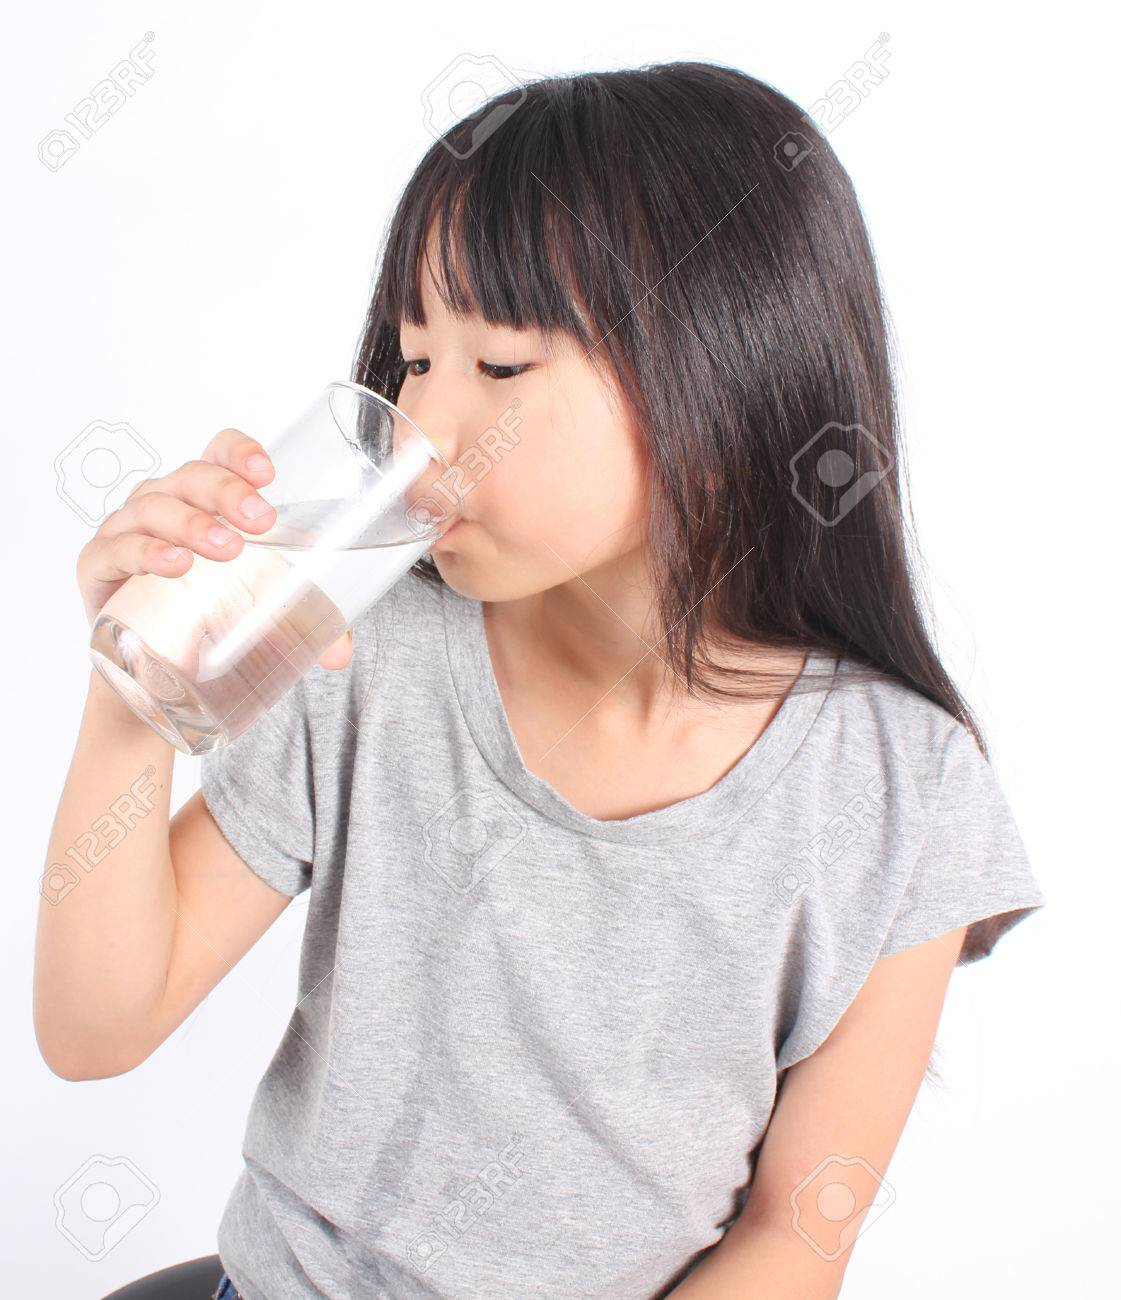 Young little girl drinking water. - 51071326